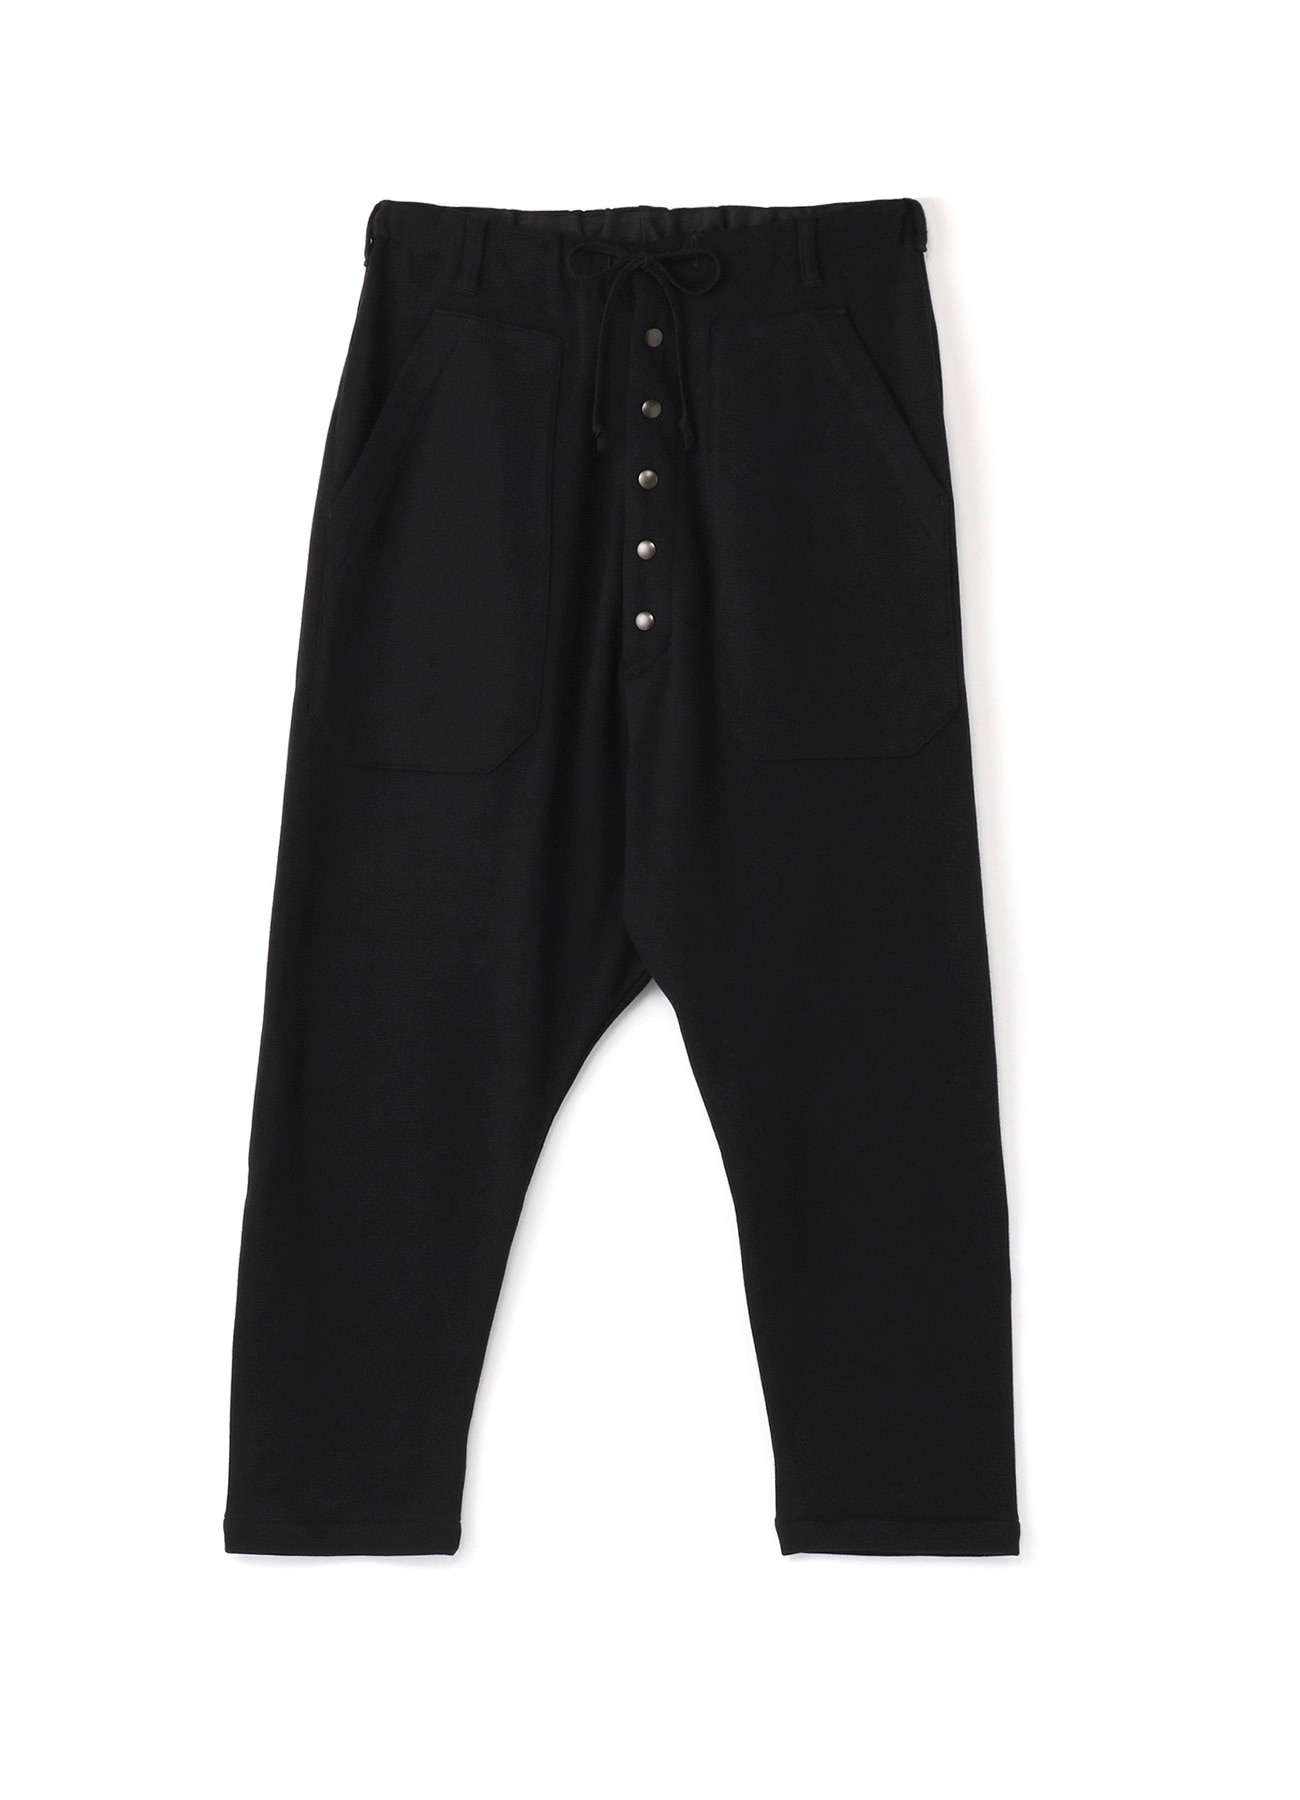 French Terry Sarouel Pants